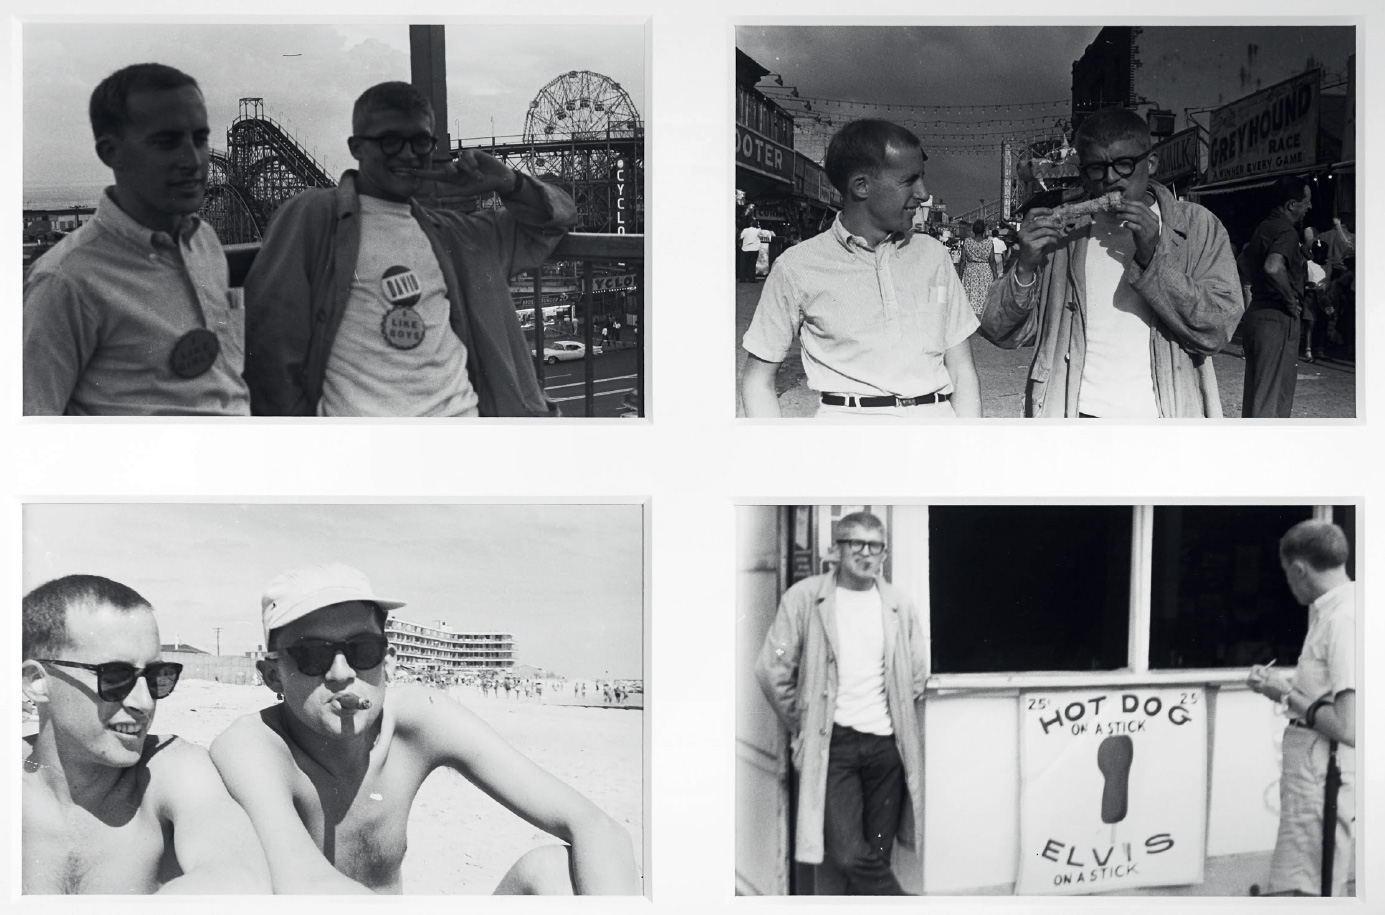 Barrie Bates with David Hockney at Coney Island in New York, 1961.